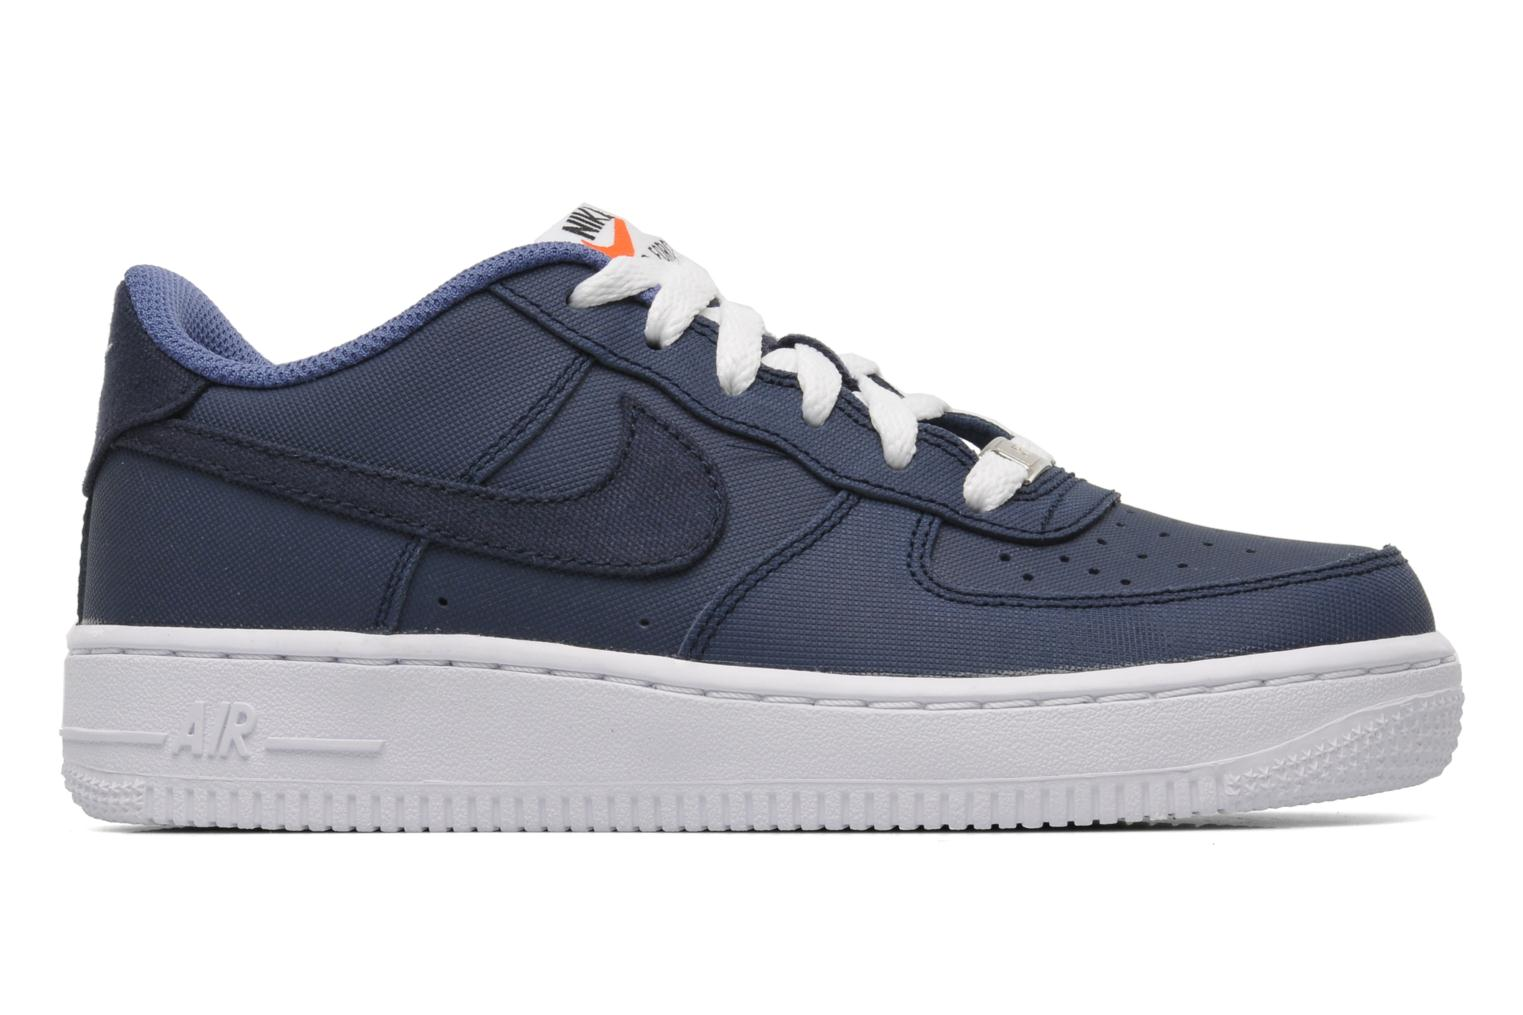 nike air force 1 gs trainers in blue at 219244. Black Bedroom Furniture Sets. Home Design Ideas